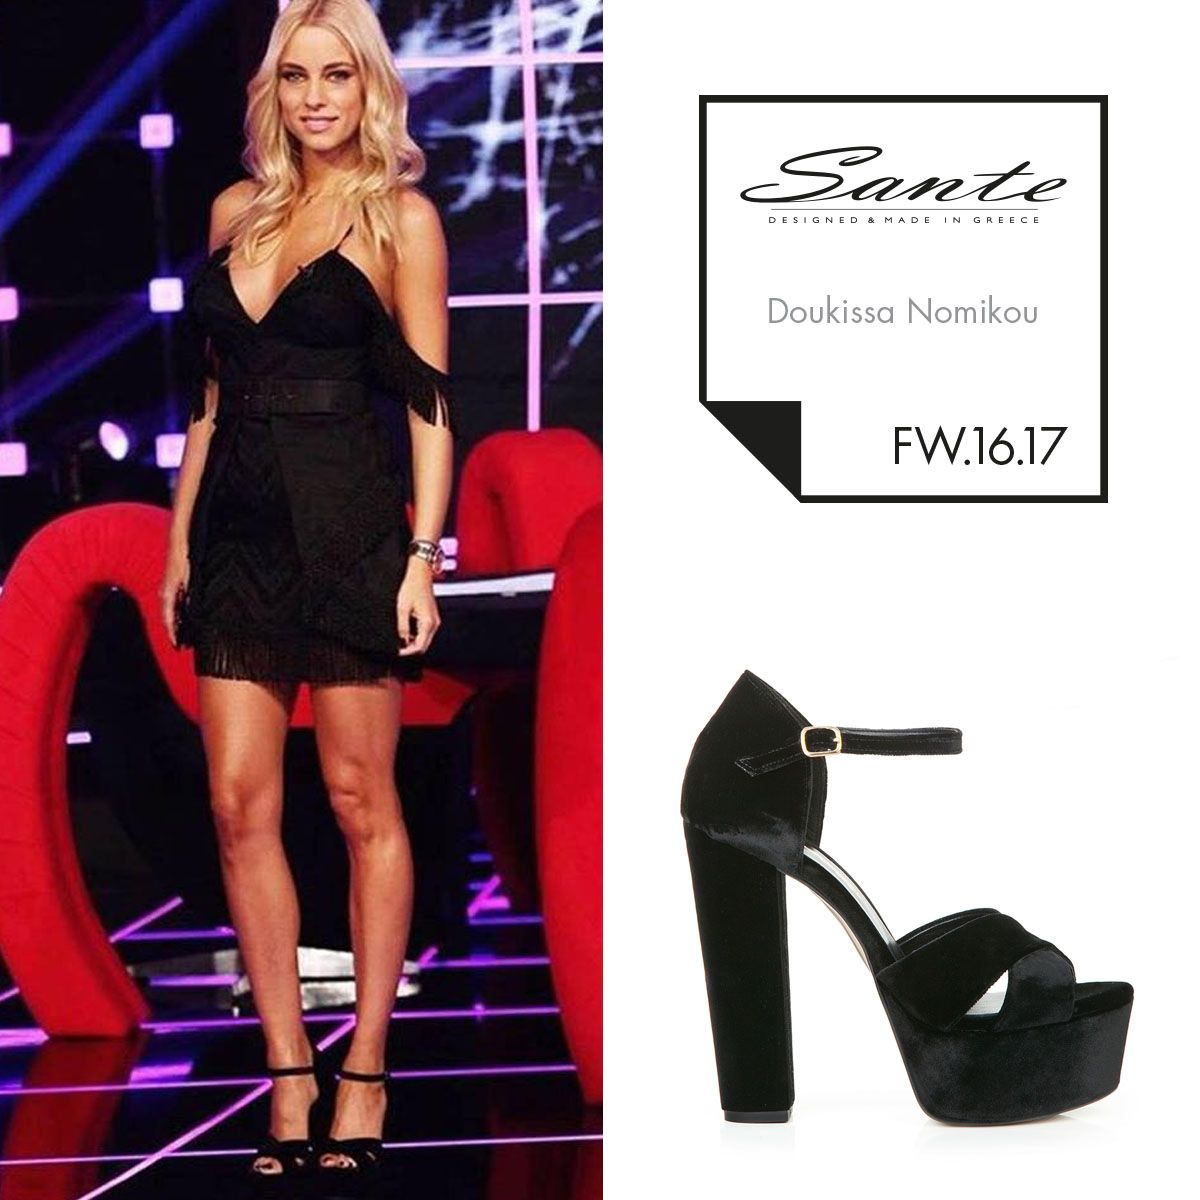 Doukissa Nomikou (@dutchesss_) in SANTE High Heels styling by Christos Alexandropoulos (@christos_alexandropoulos) #SanteFW1617 #CelebritiesinSante Available in stores & online (SKU-94401): www.santeshoes.com